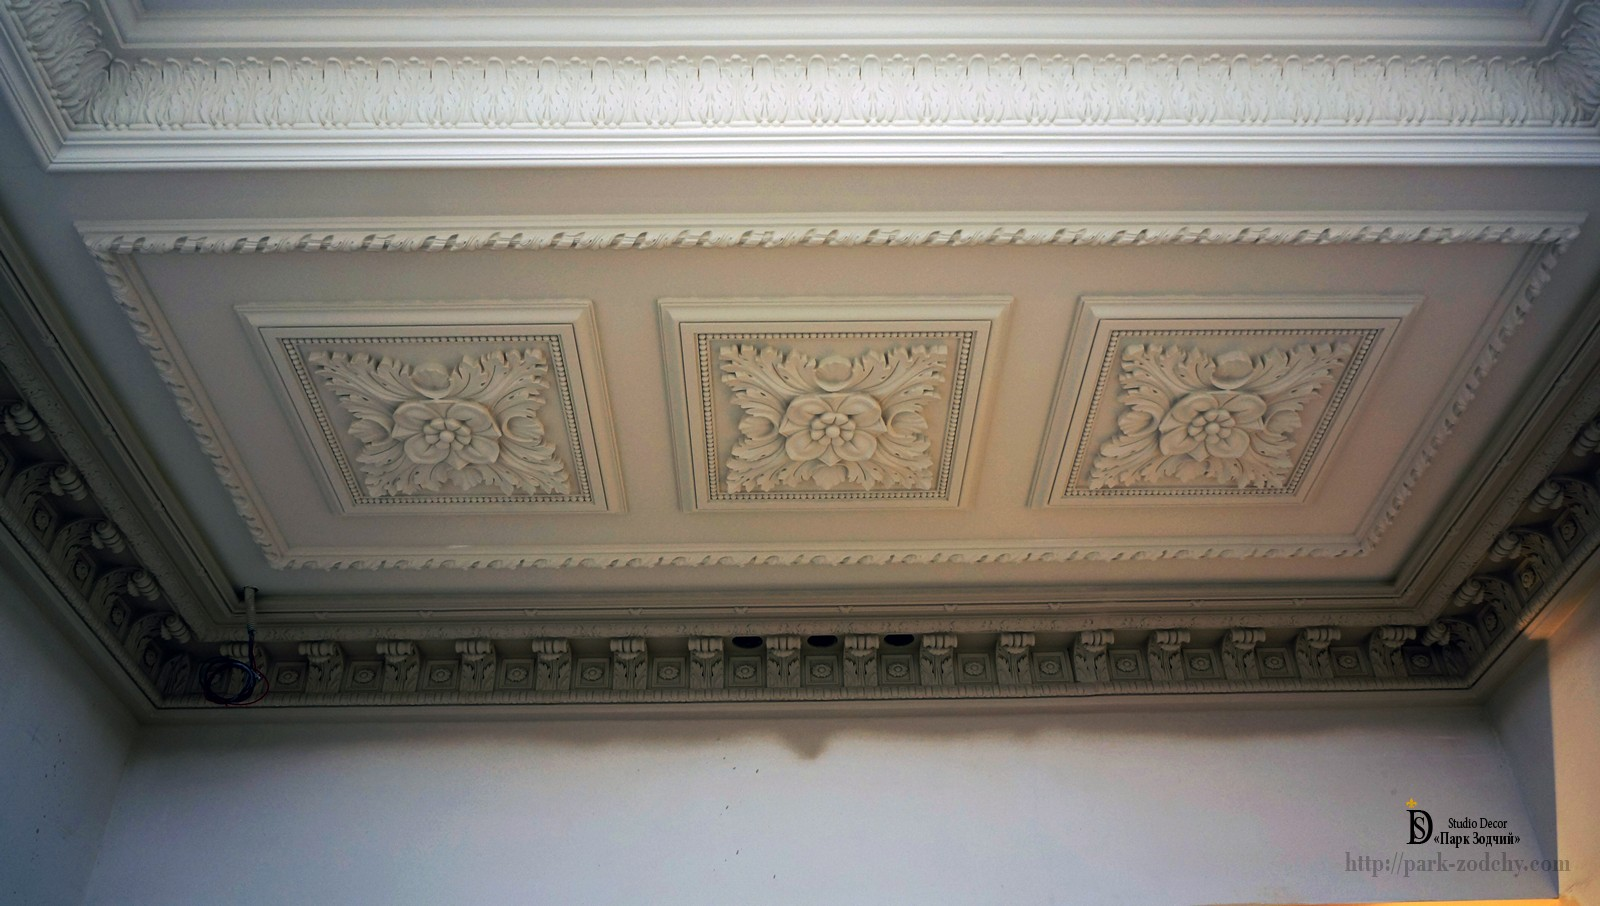 the decor of plaster moldings on the ceiling